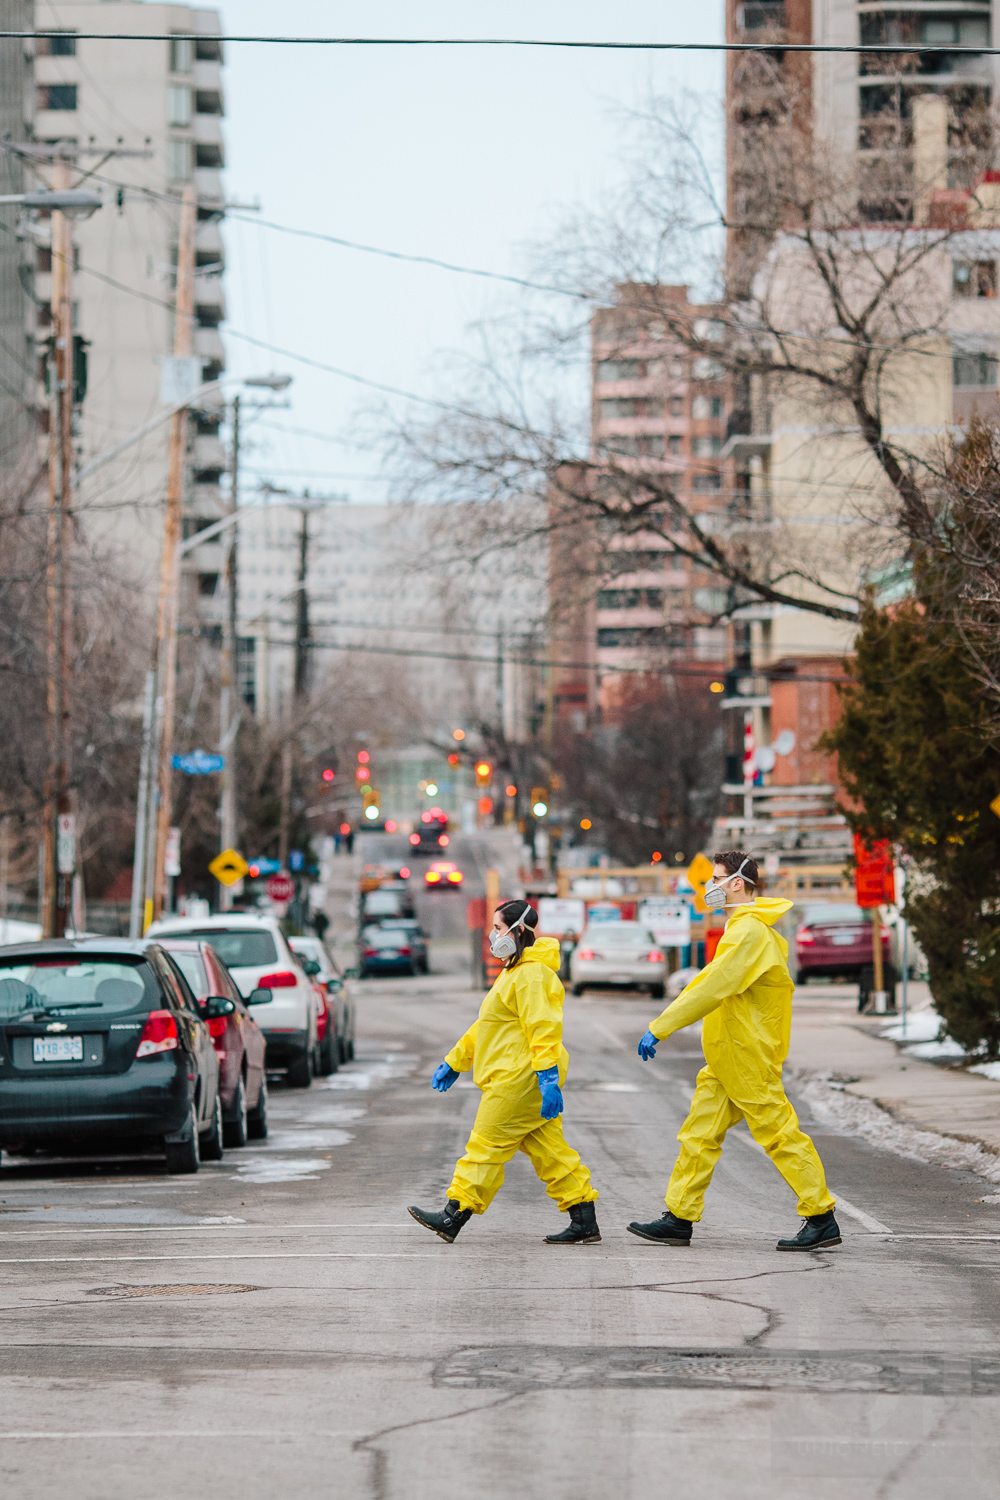 Engagement shoot with the couple crossing the street dressed in hazmat suits